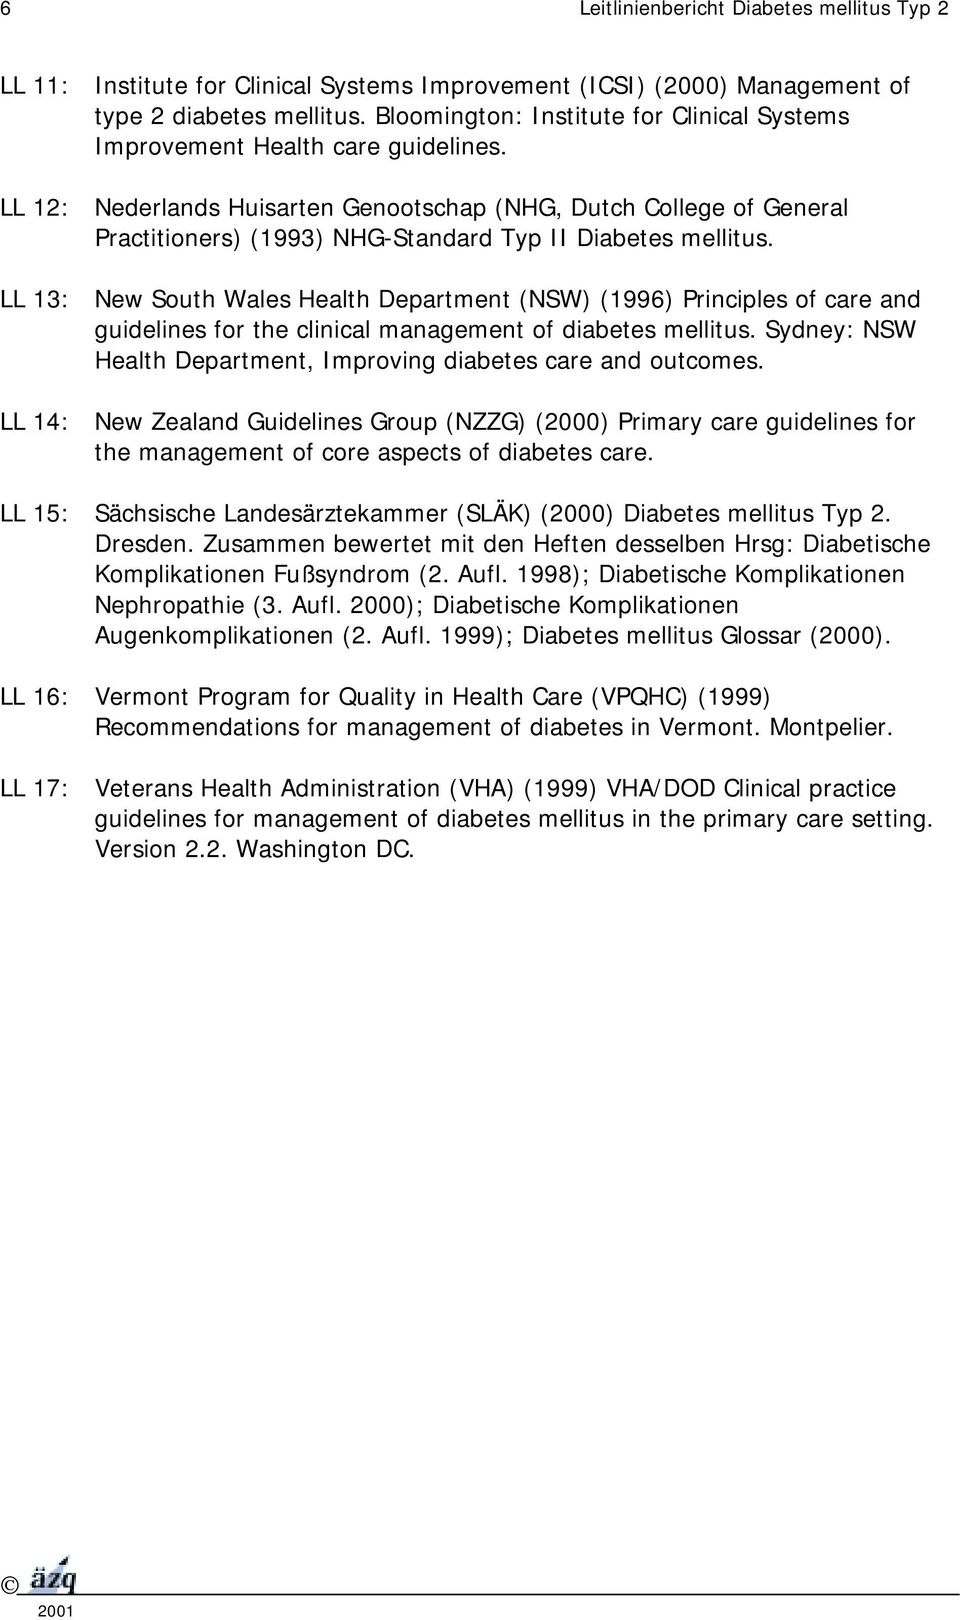 LL 12: Nederlands Huisarten Genootschap (NHG, Dutch College of General Practitioners) (1993) NHG-Standard Typ II Diabetes mellitus.